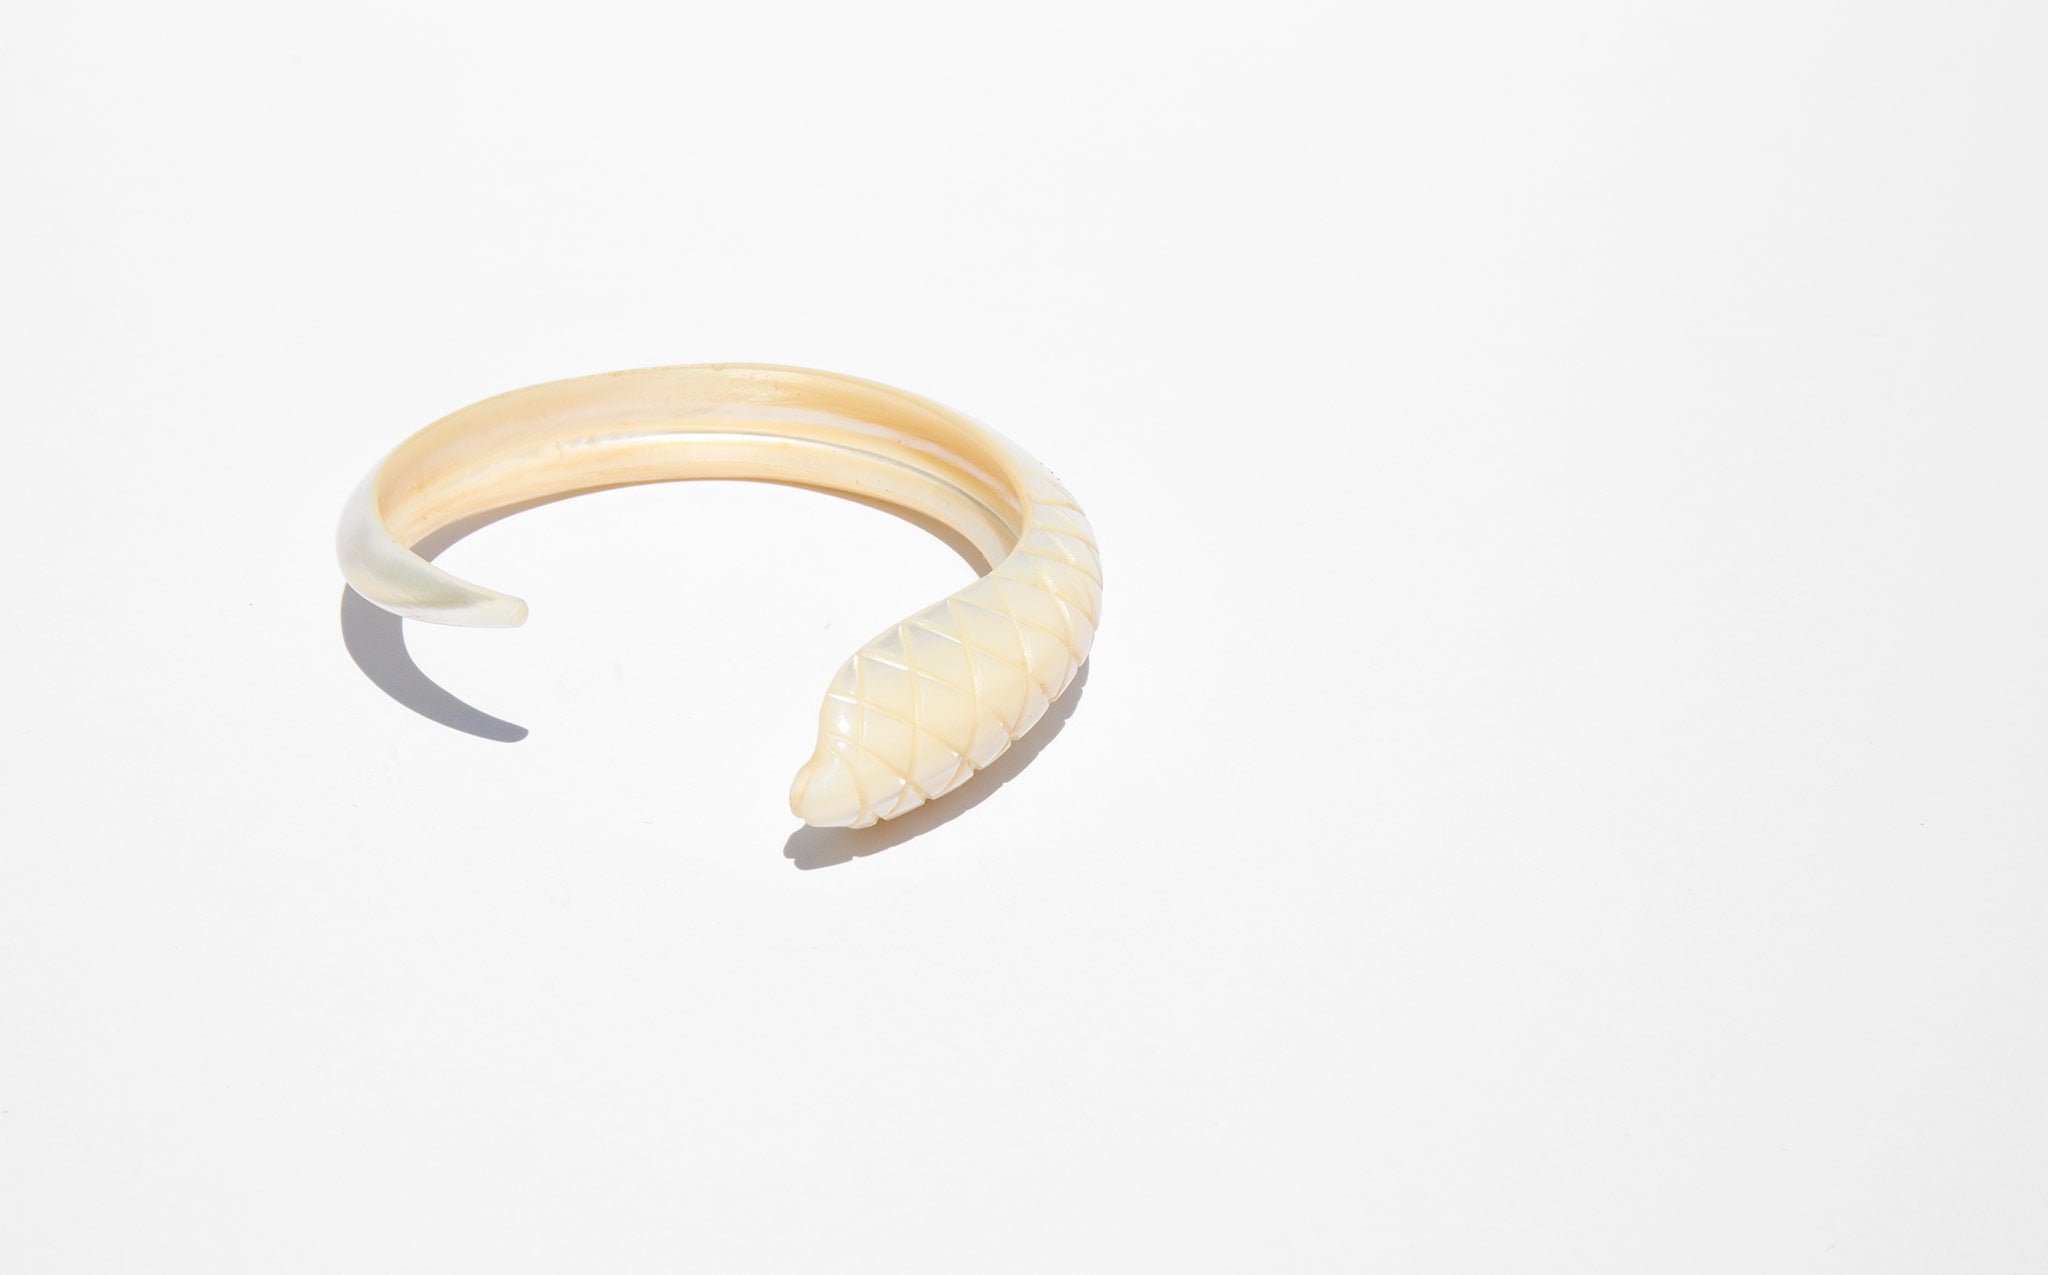 Rejuvenation Object Bracelet